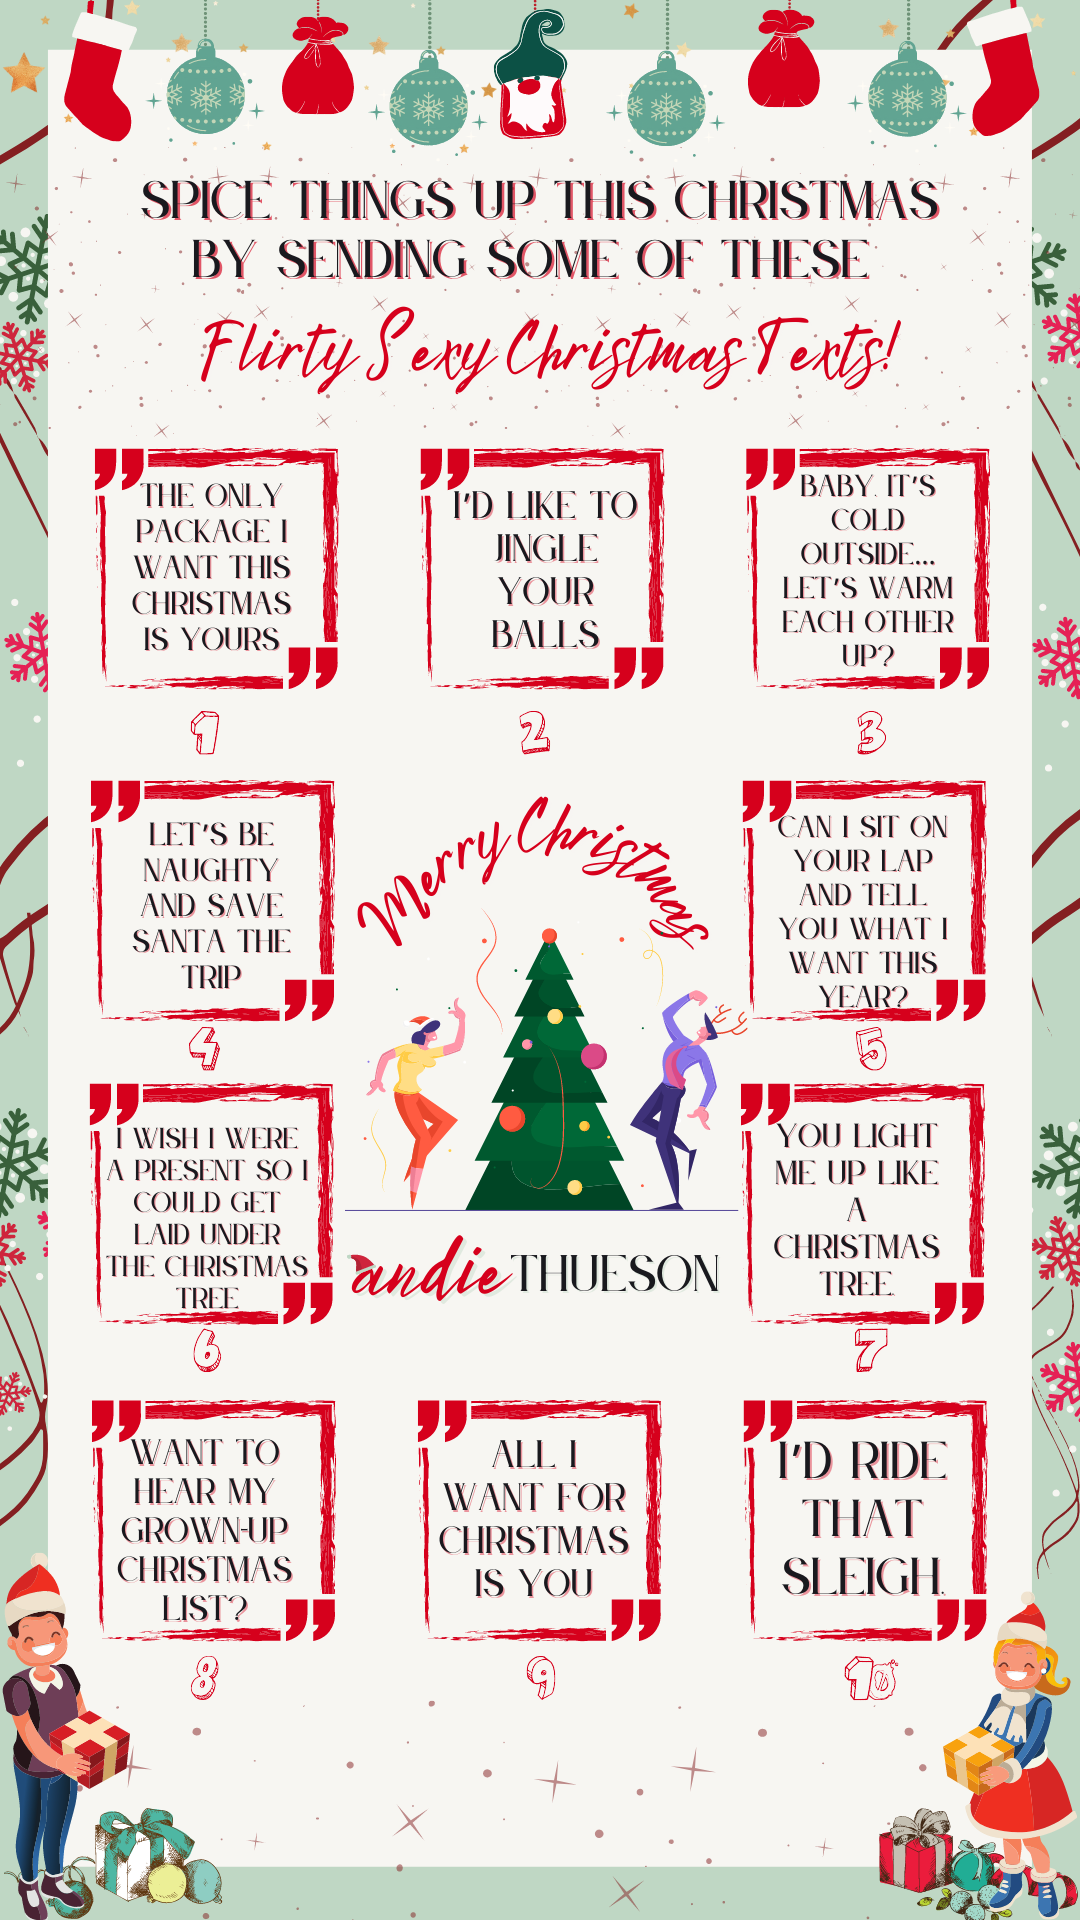 Sexy Christmas Inspired Texts To Send Your Significant Other